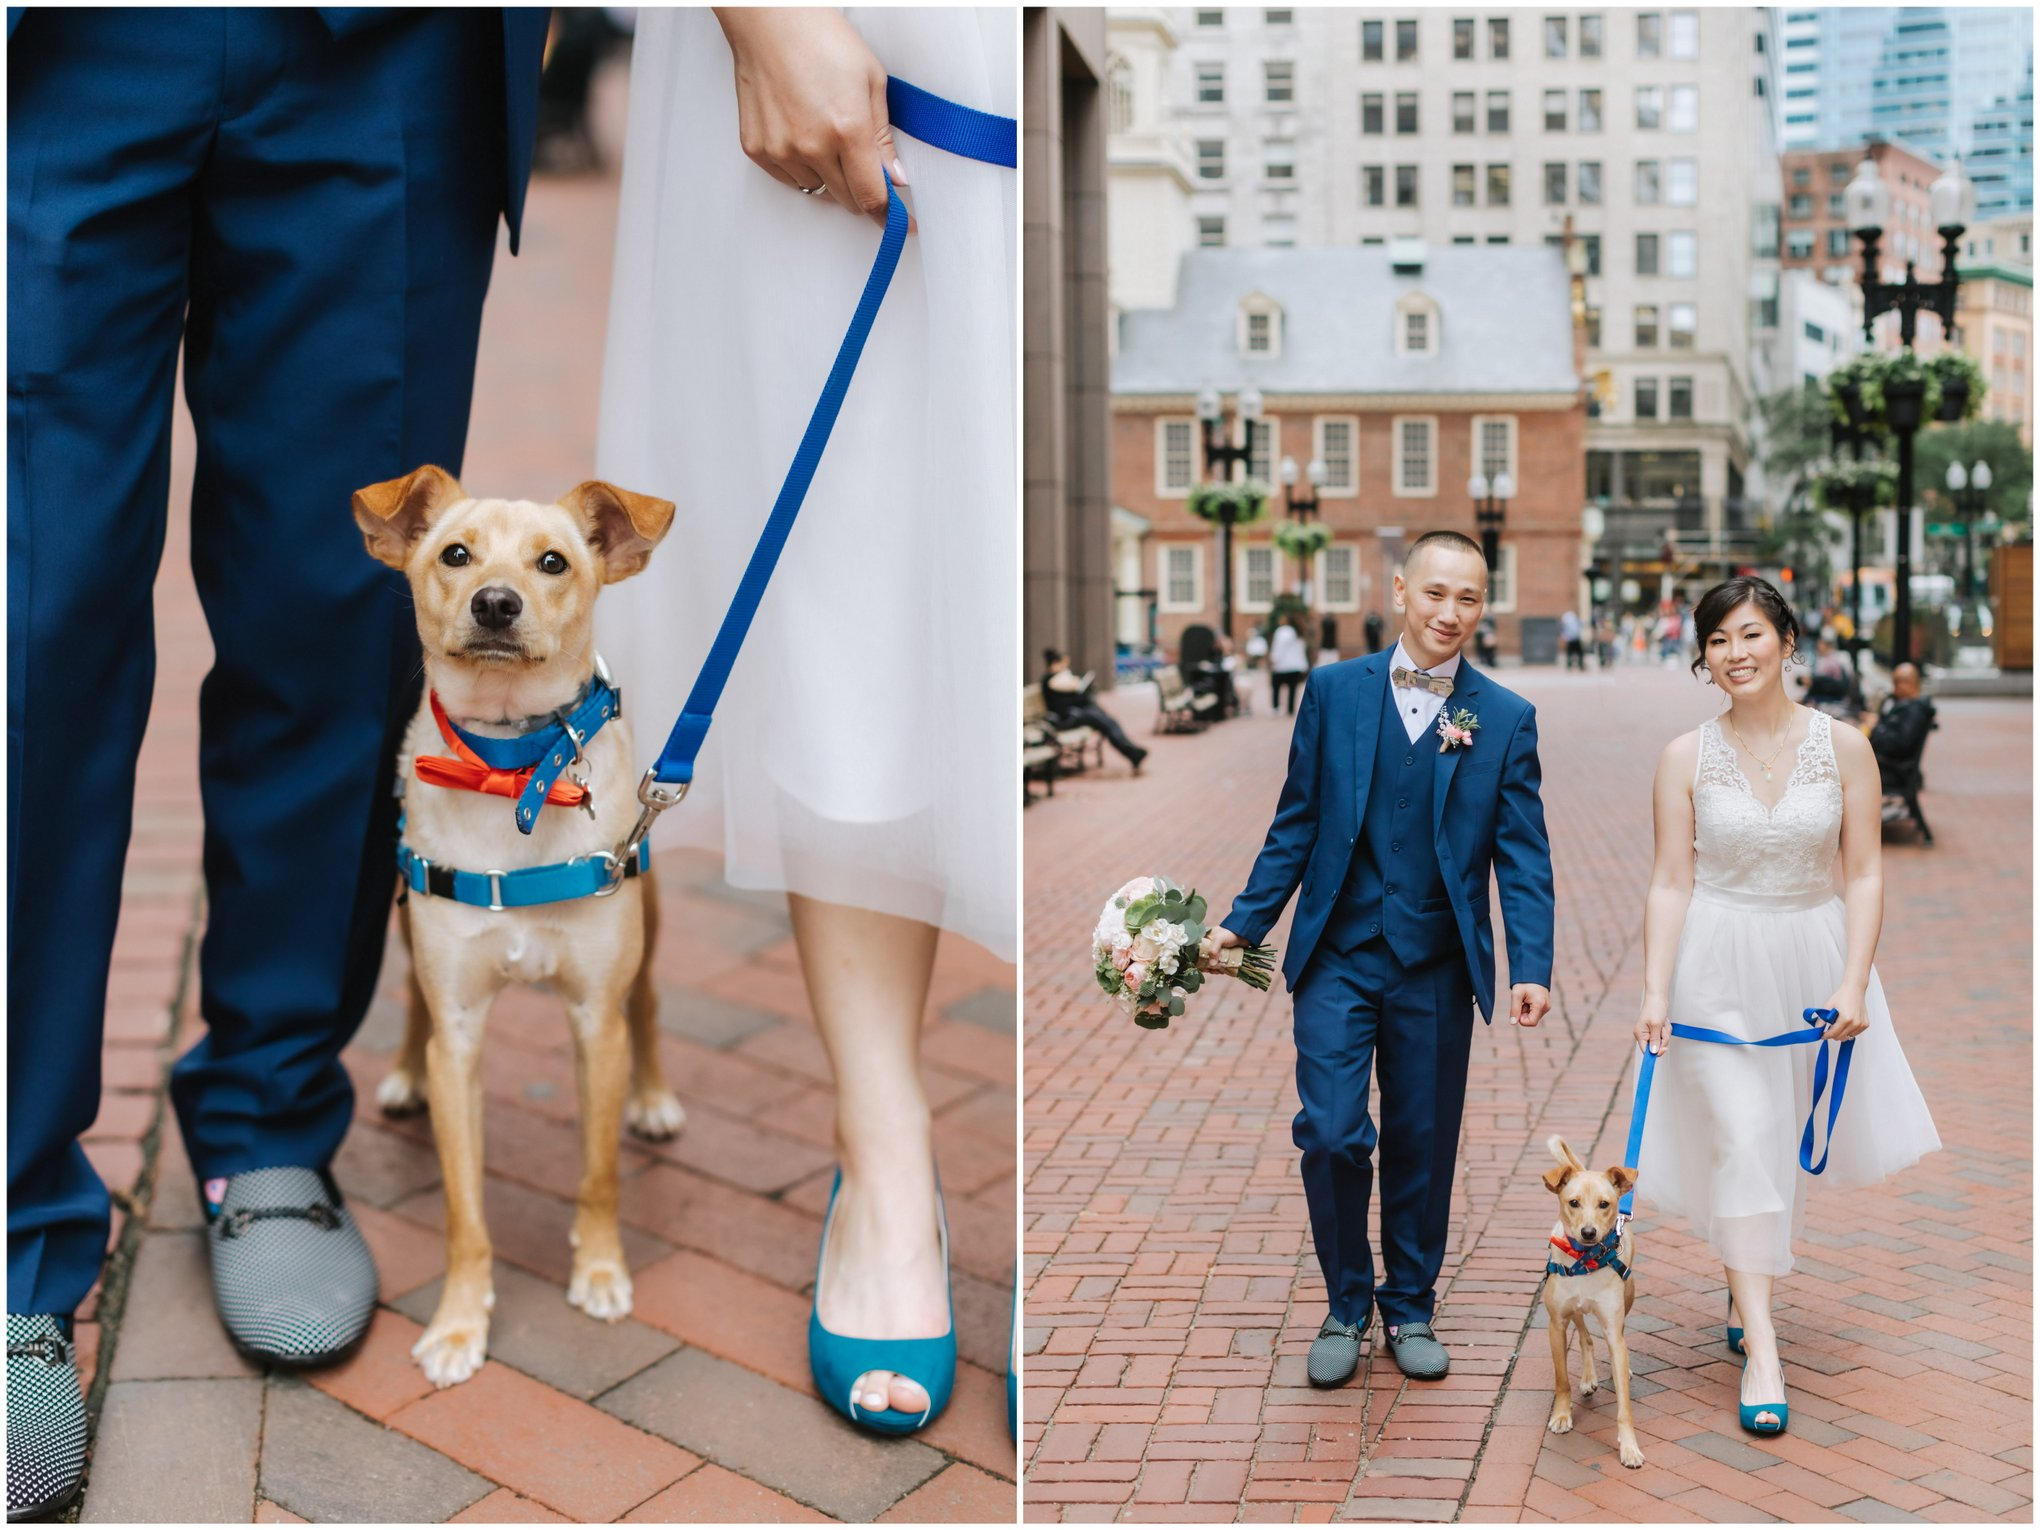 Boston-City-Hall-Dog-Wedding-Elopement-Public-Garden-7.jpg